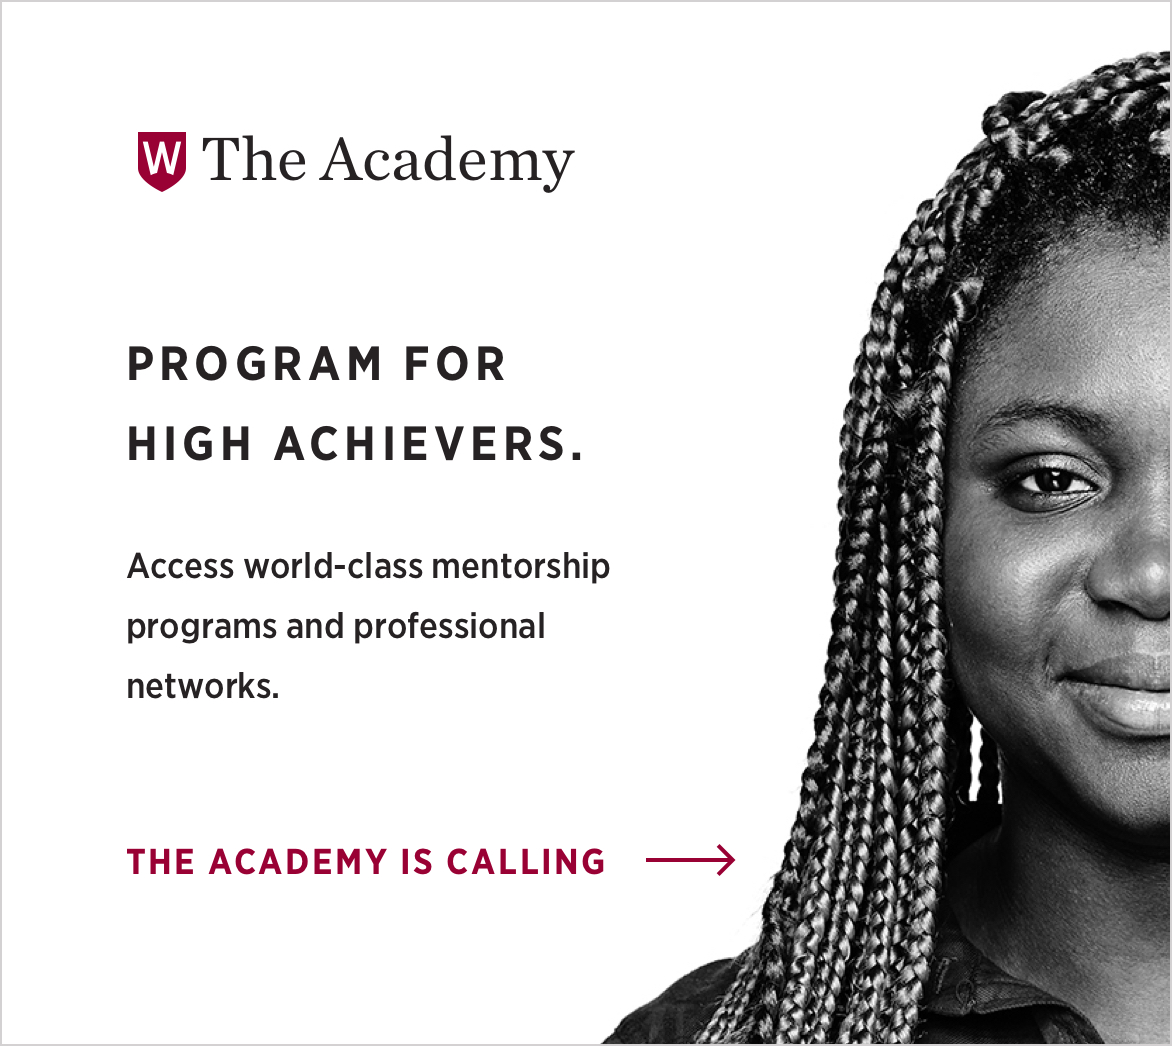 The Academy. High achievers program.